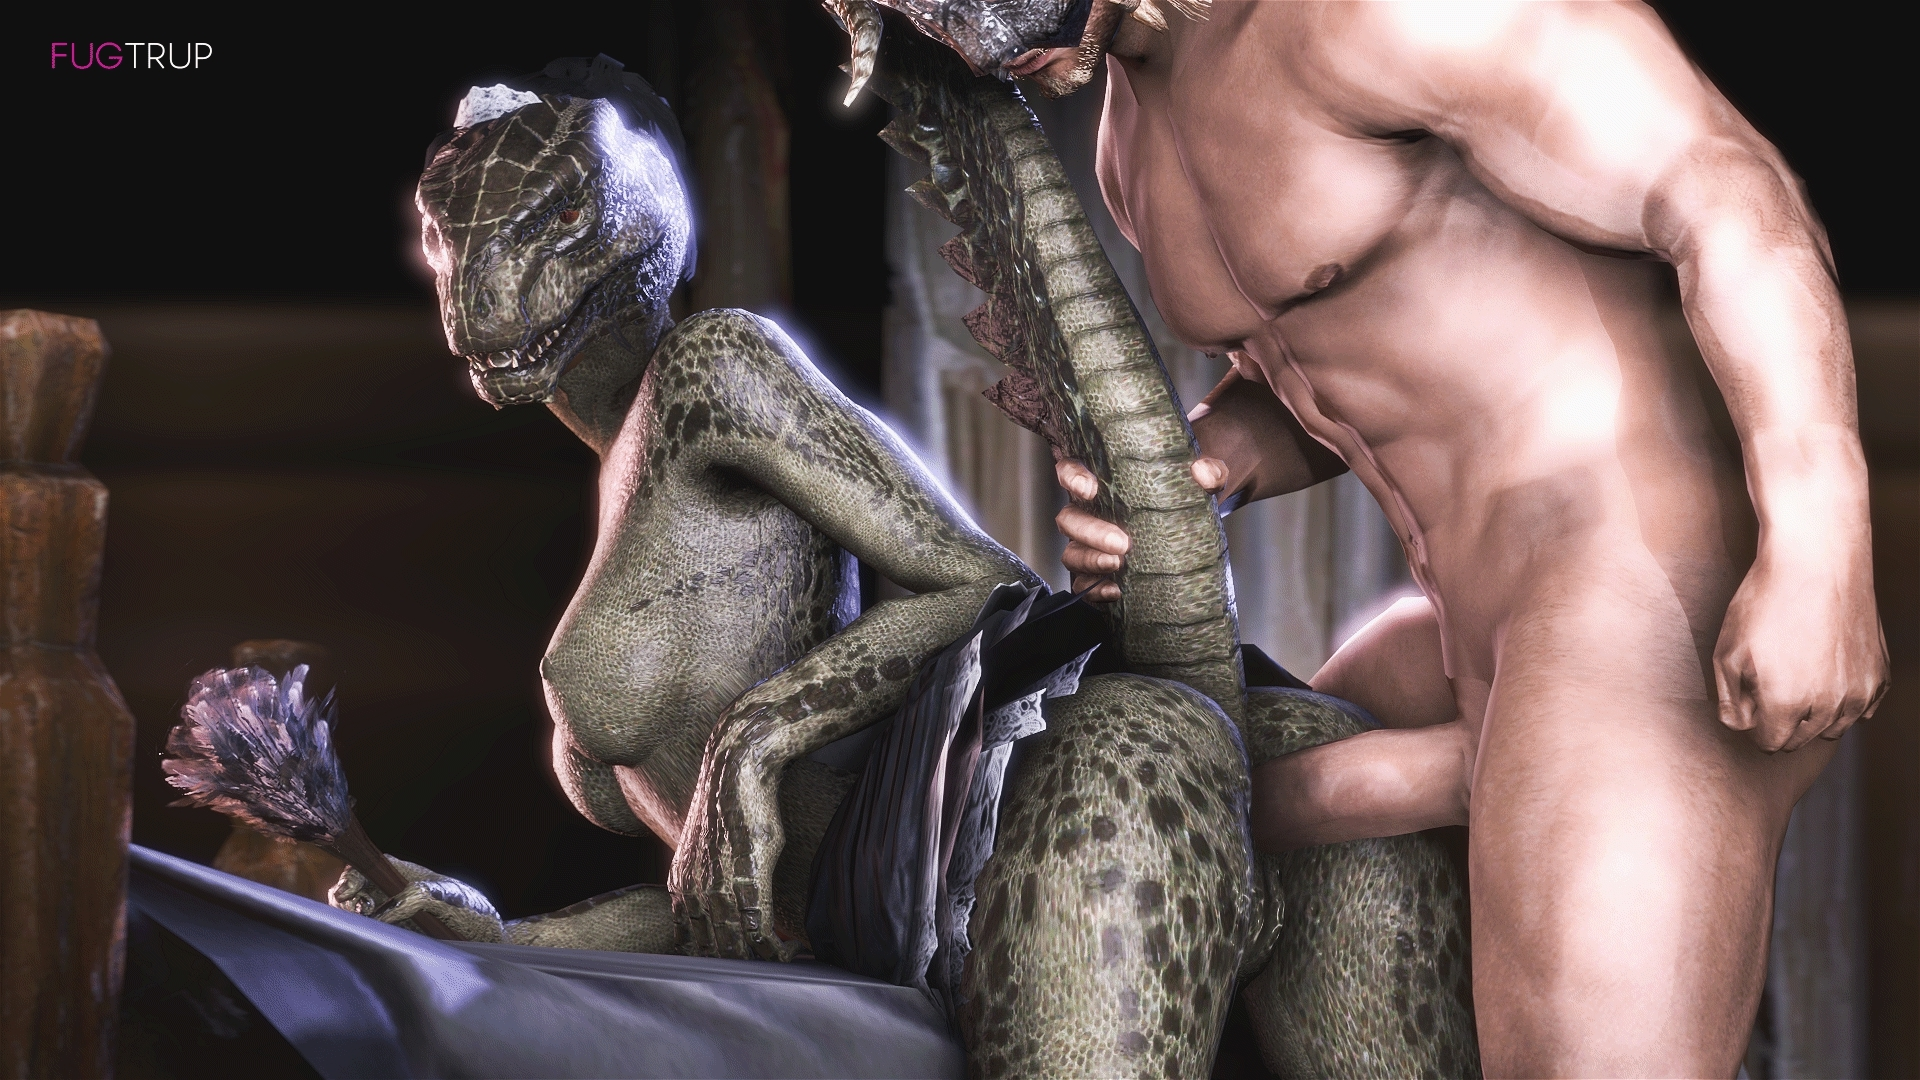 Argonian sex xxx sexy photos